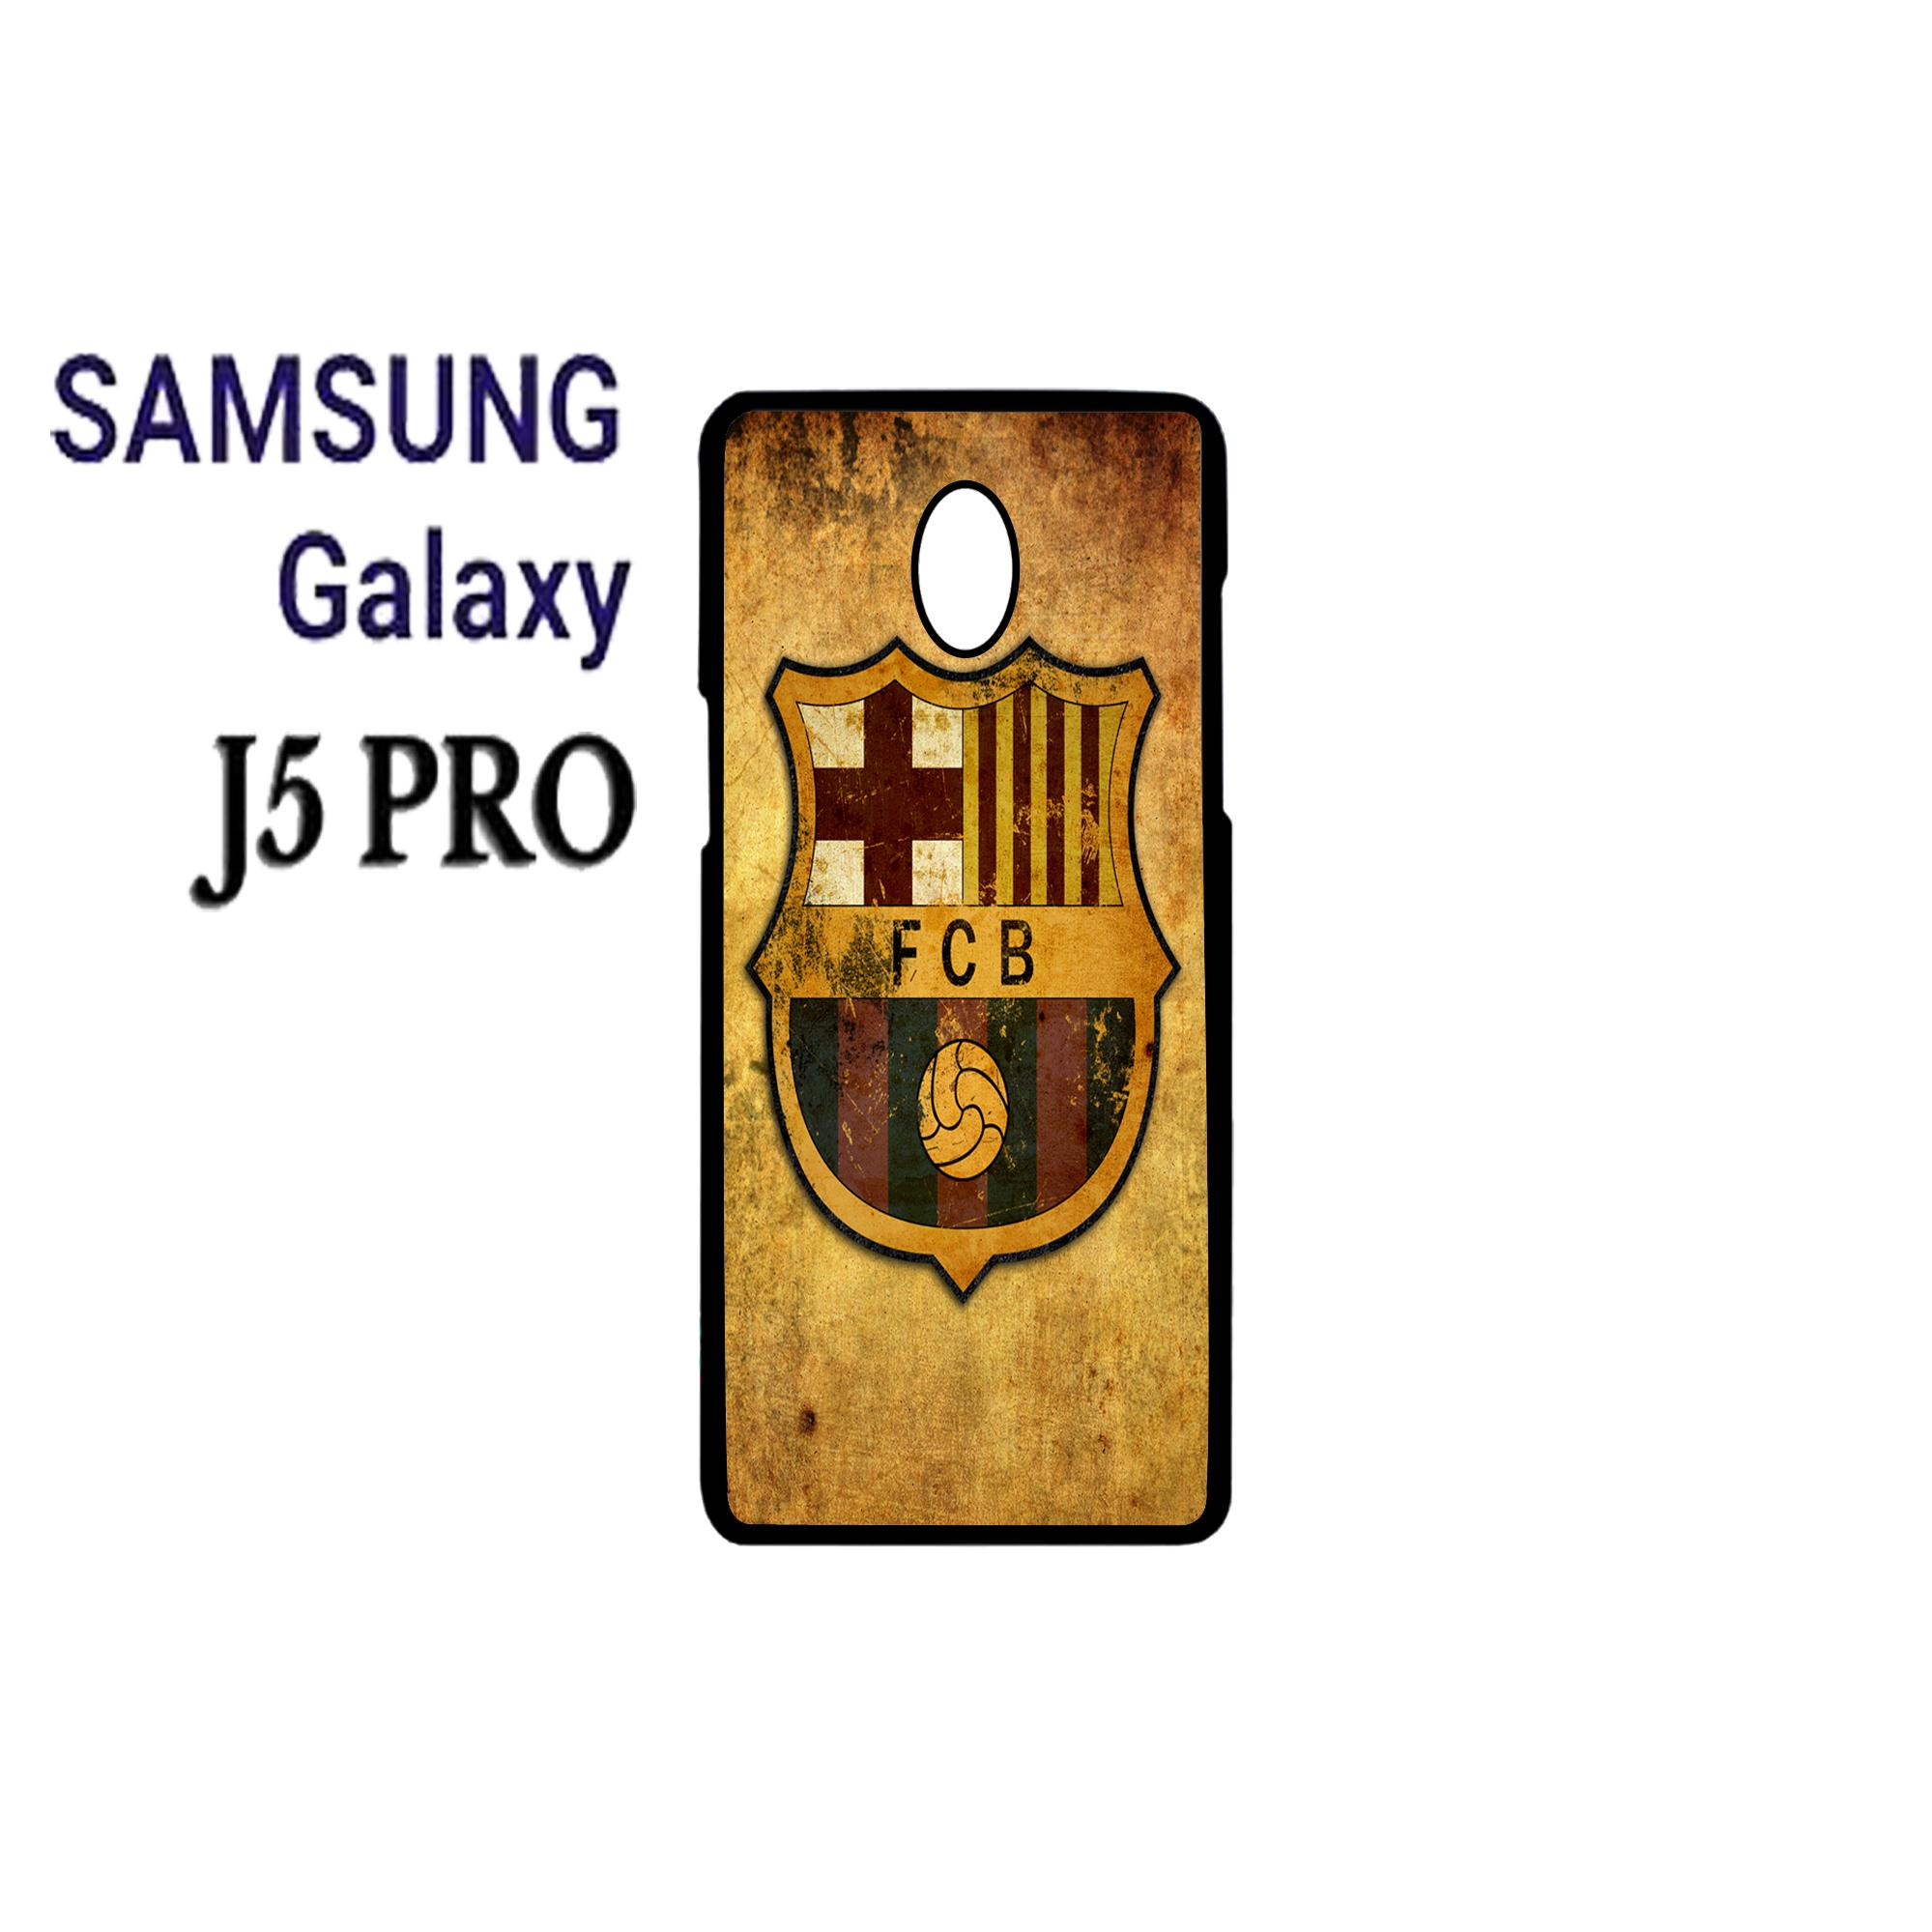 Features Bcs Custom Barca Fashion Phone Case New Samsung Galaxy J5